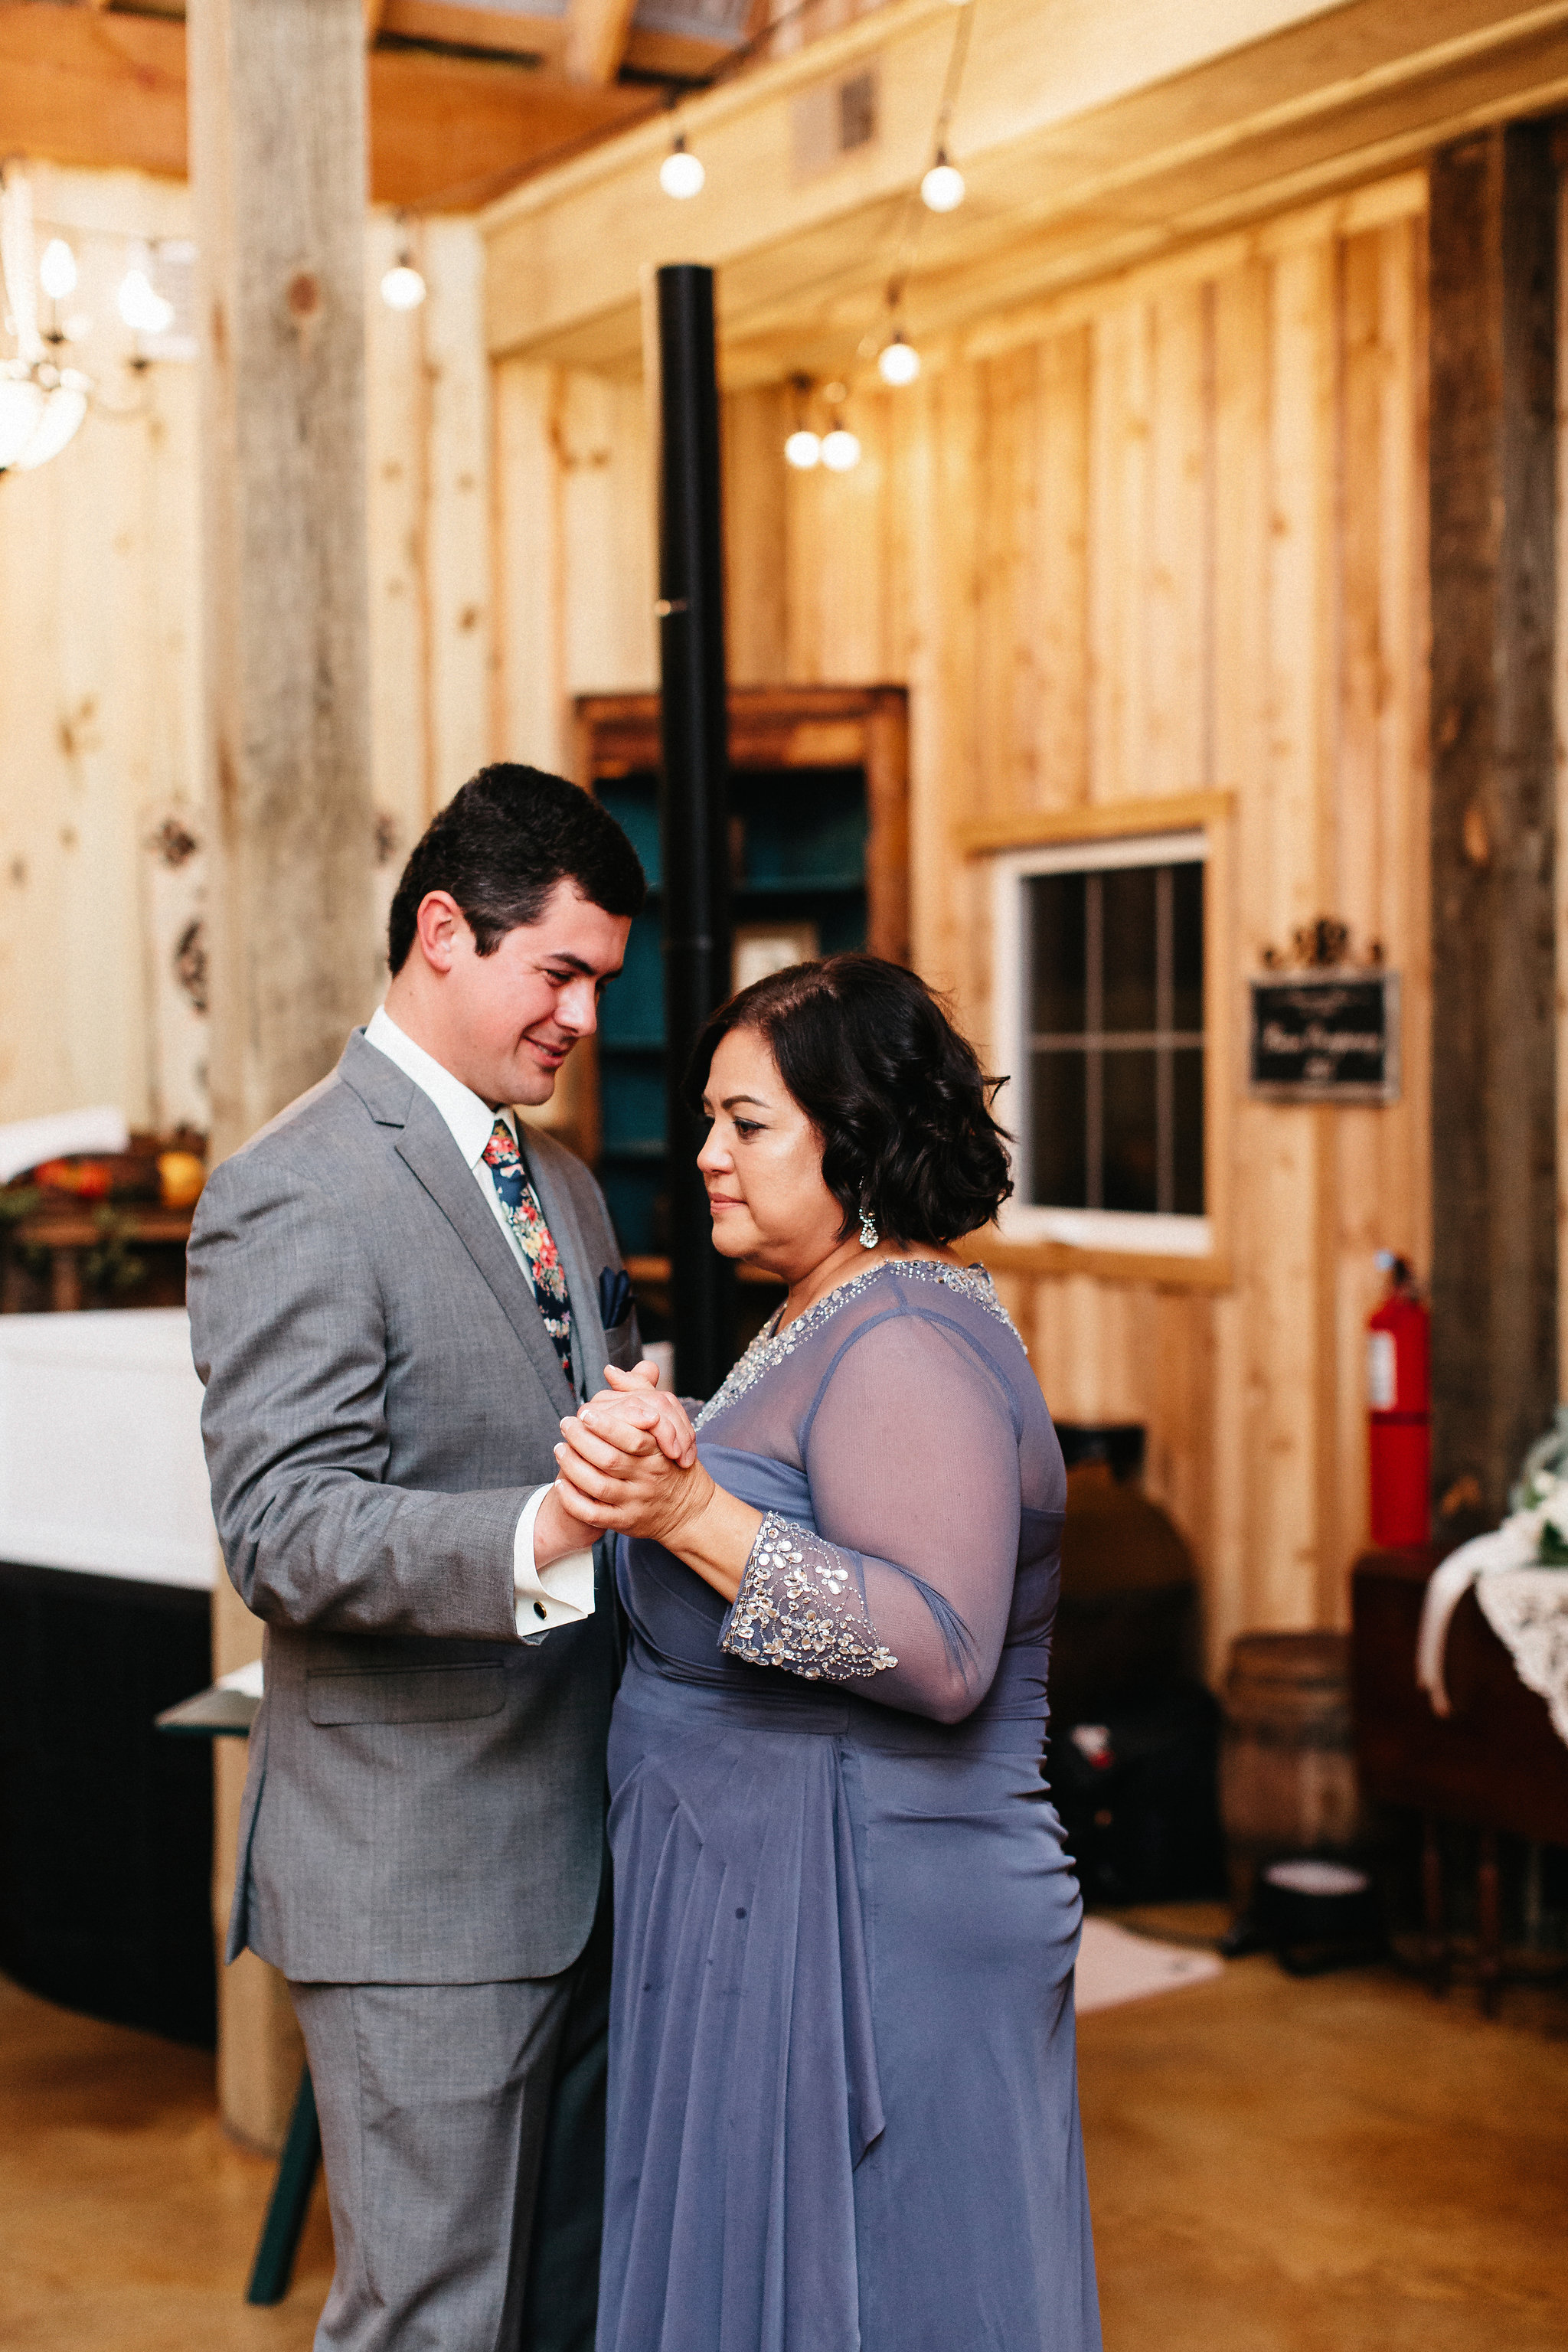 Ashley&NathanMarried2017-11-10at19.26.50PM.jpg